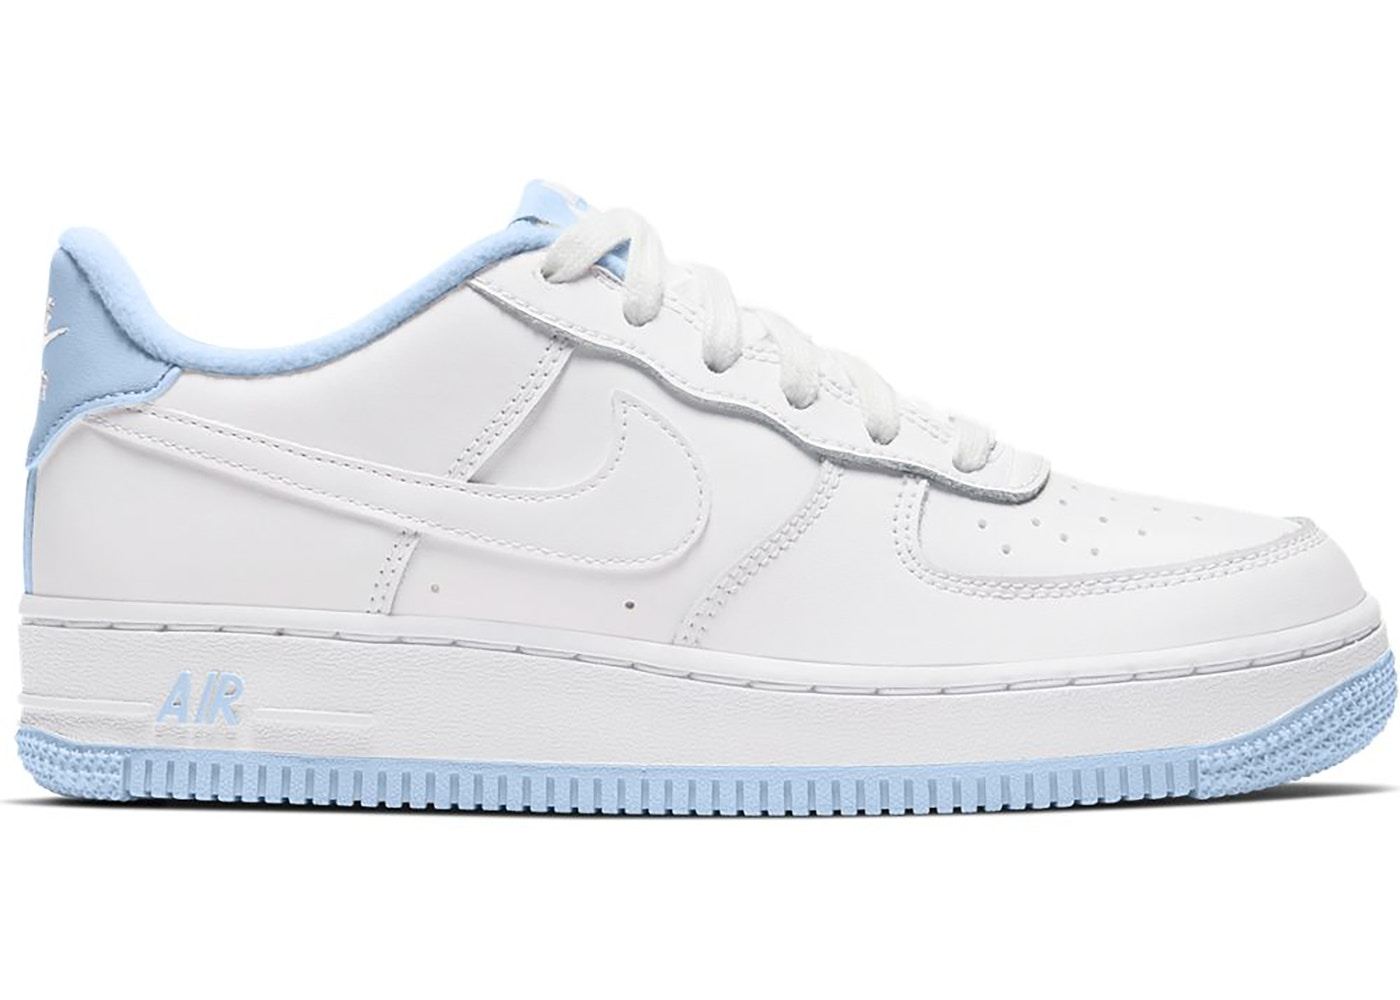 Nike Air Force 1 Low GS Nike Air Force 1 Low White Hydrogen Blue (GS) - CD6915-103